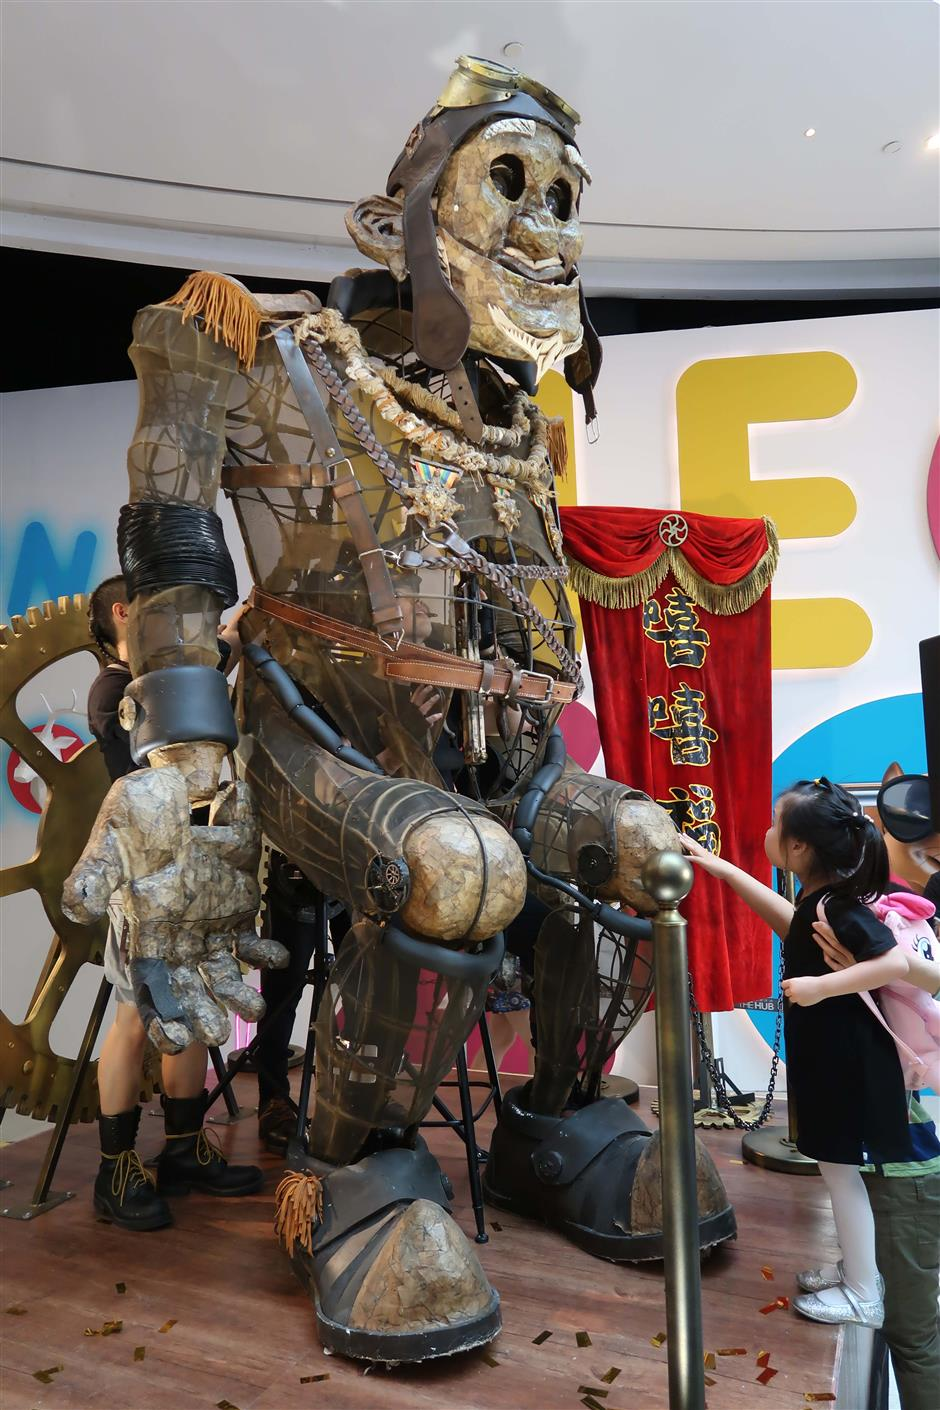 Puppets taking over Shanghai as part of theater festival